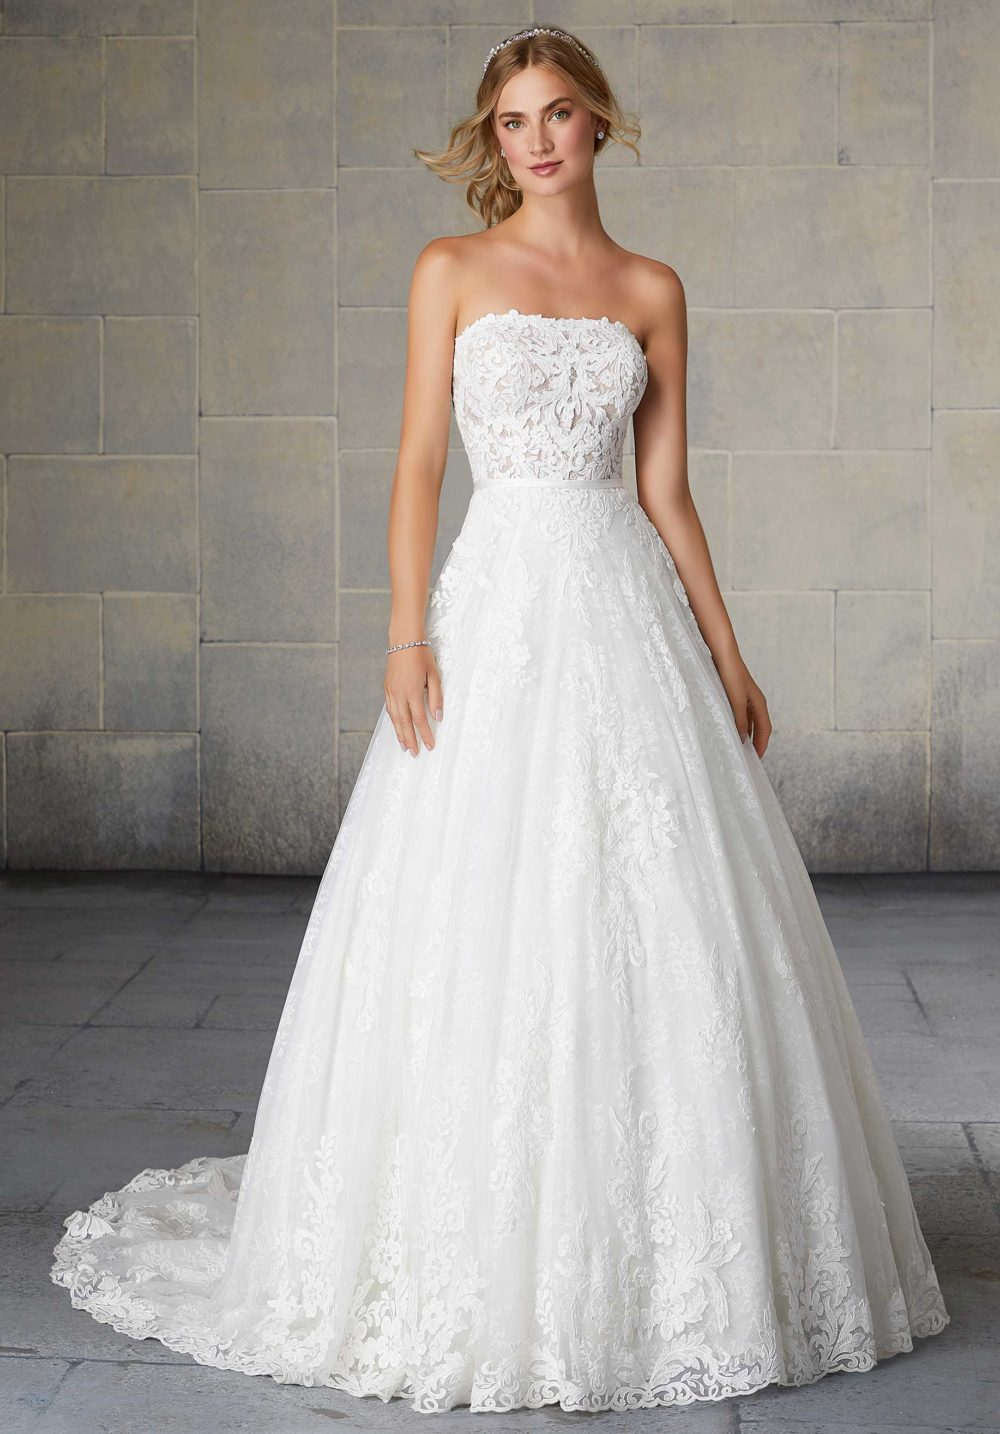 Morilee Wedding Gown Dress style 2132